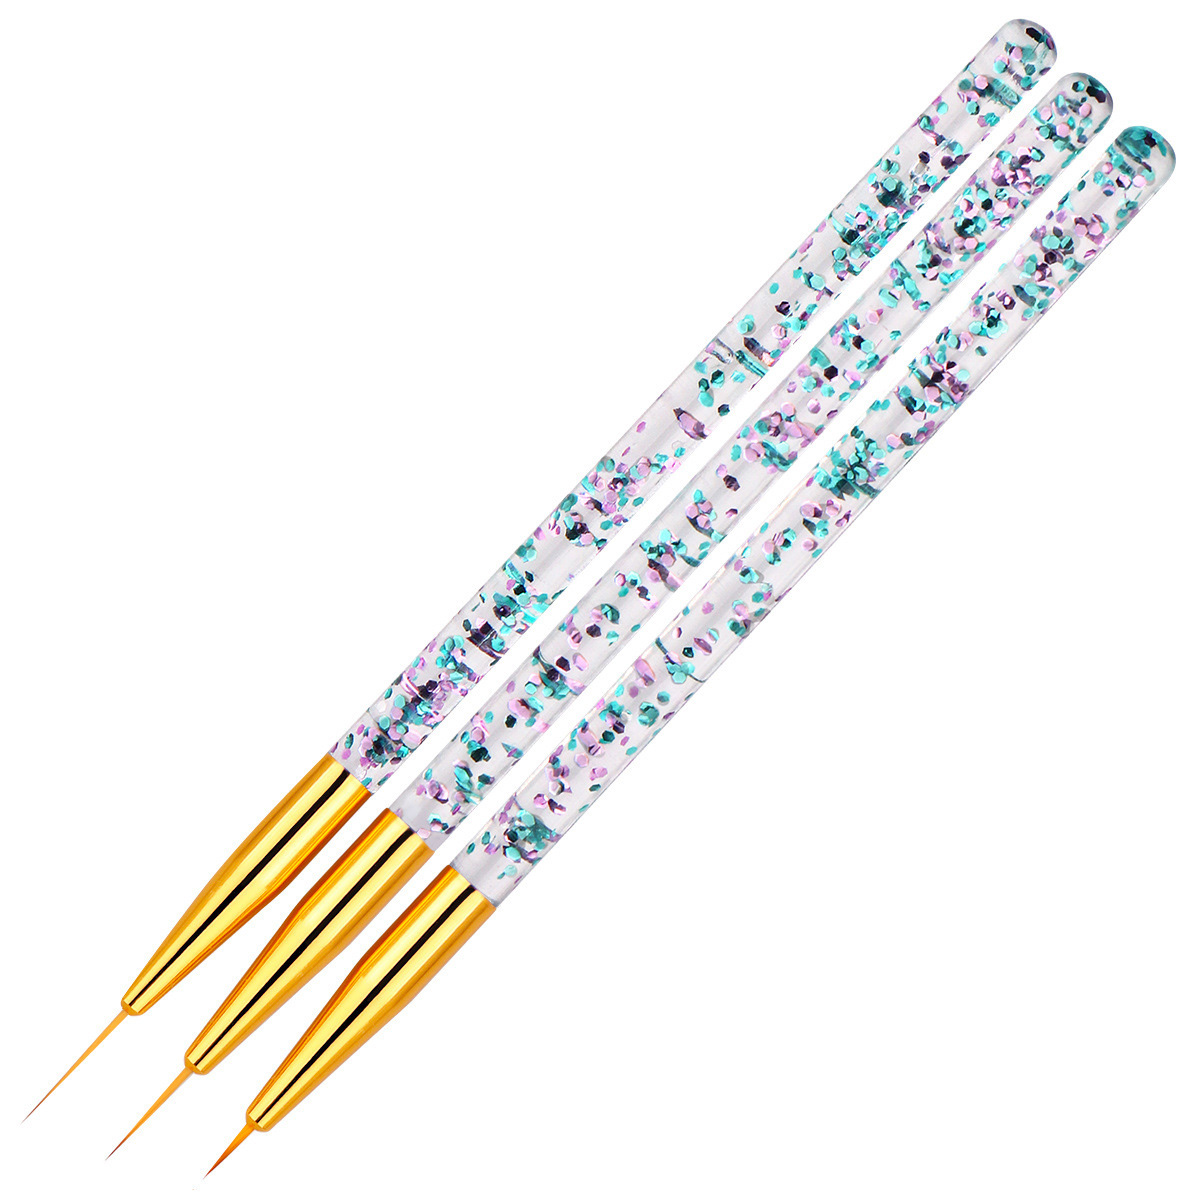 3Pcs/set Nail Art Transparent Handle Stripe Line Liner Painting Brush Acrylic Pattern Drawing DIY Pen Manicure Tool